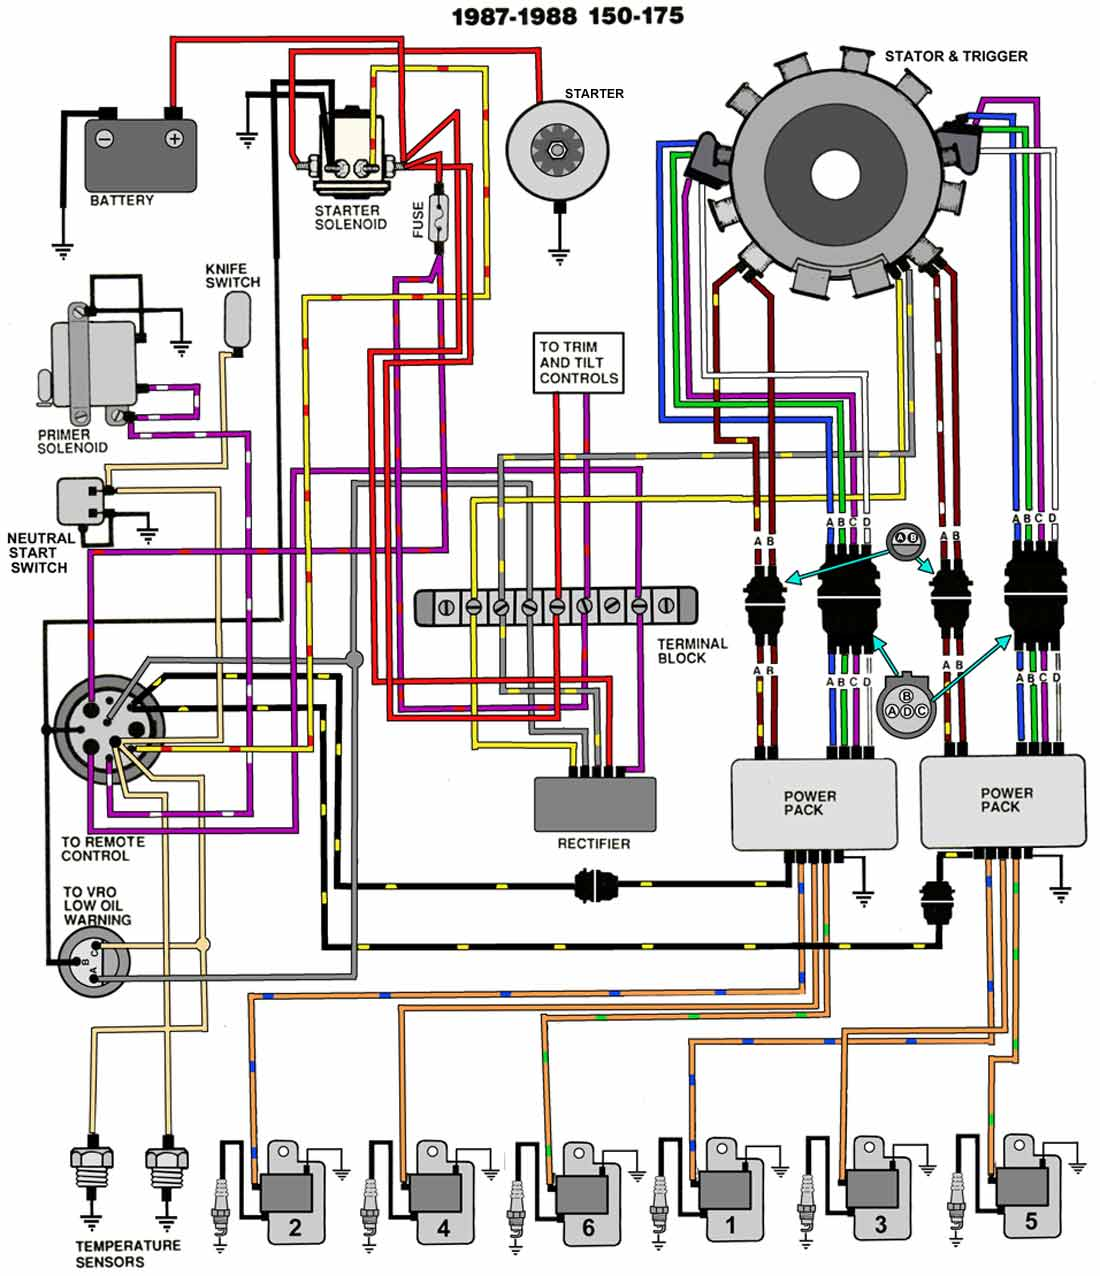 Omc Key Switch Diagram | Repair Manual Omc Ignition Switch Wiring Diagram Kill on